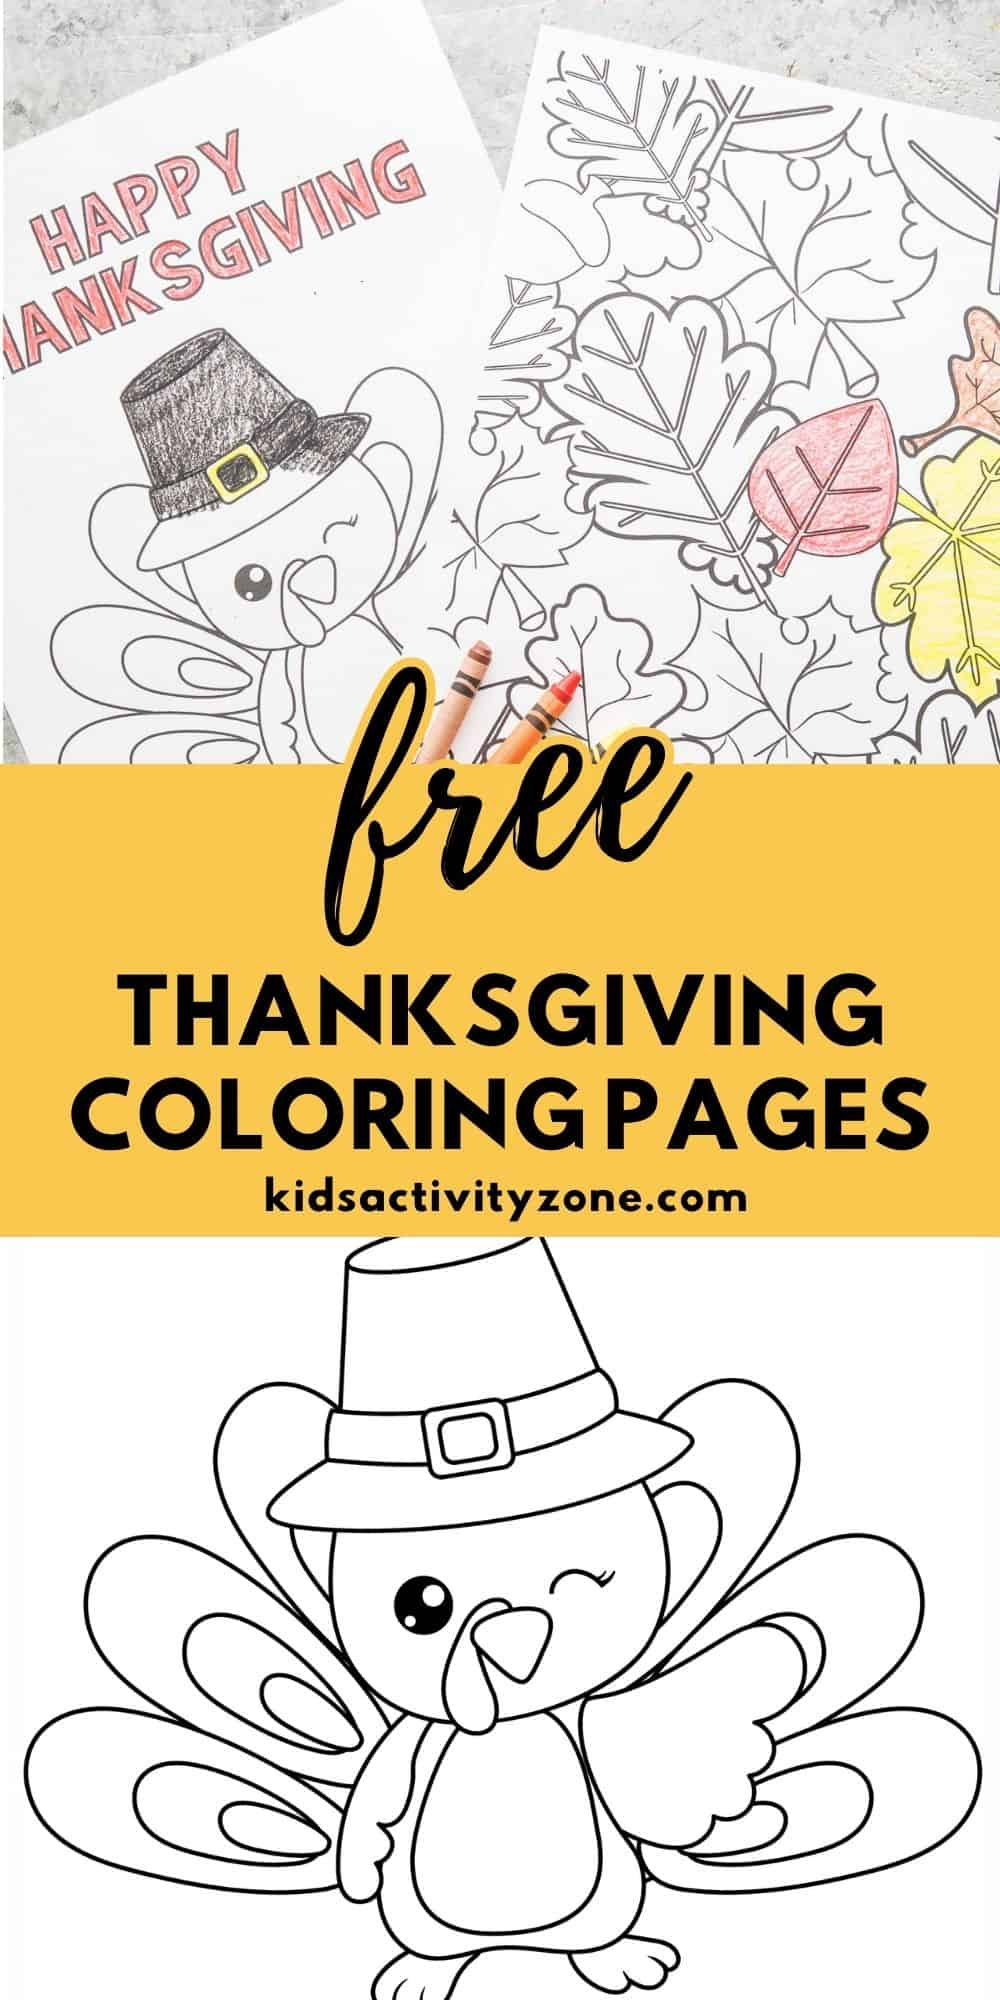 Free Thanksgiving Coloring Pages are the perfect addition to your parties and gatherings. They are the simplest activity. Just print and color!